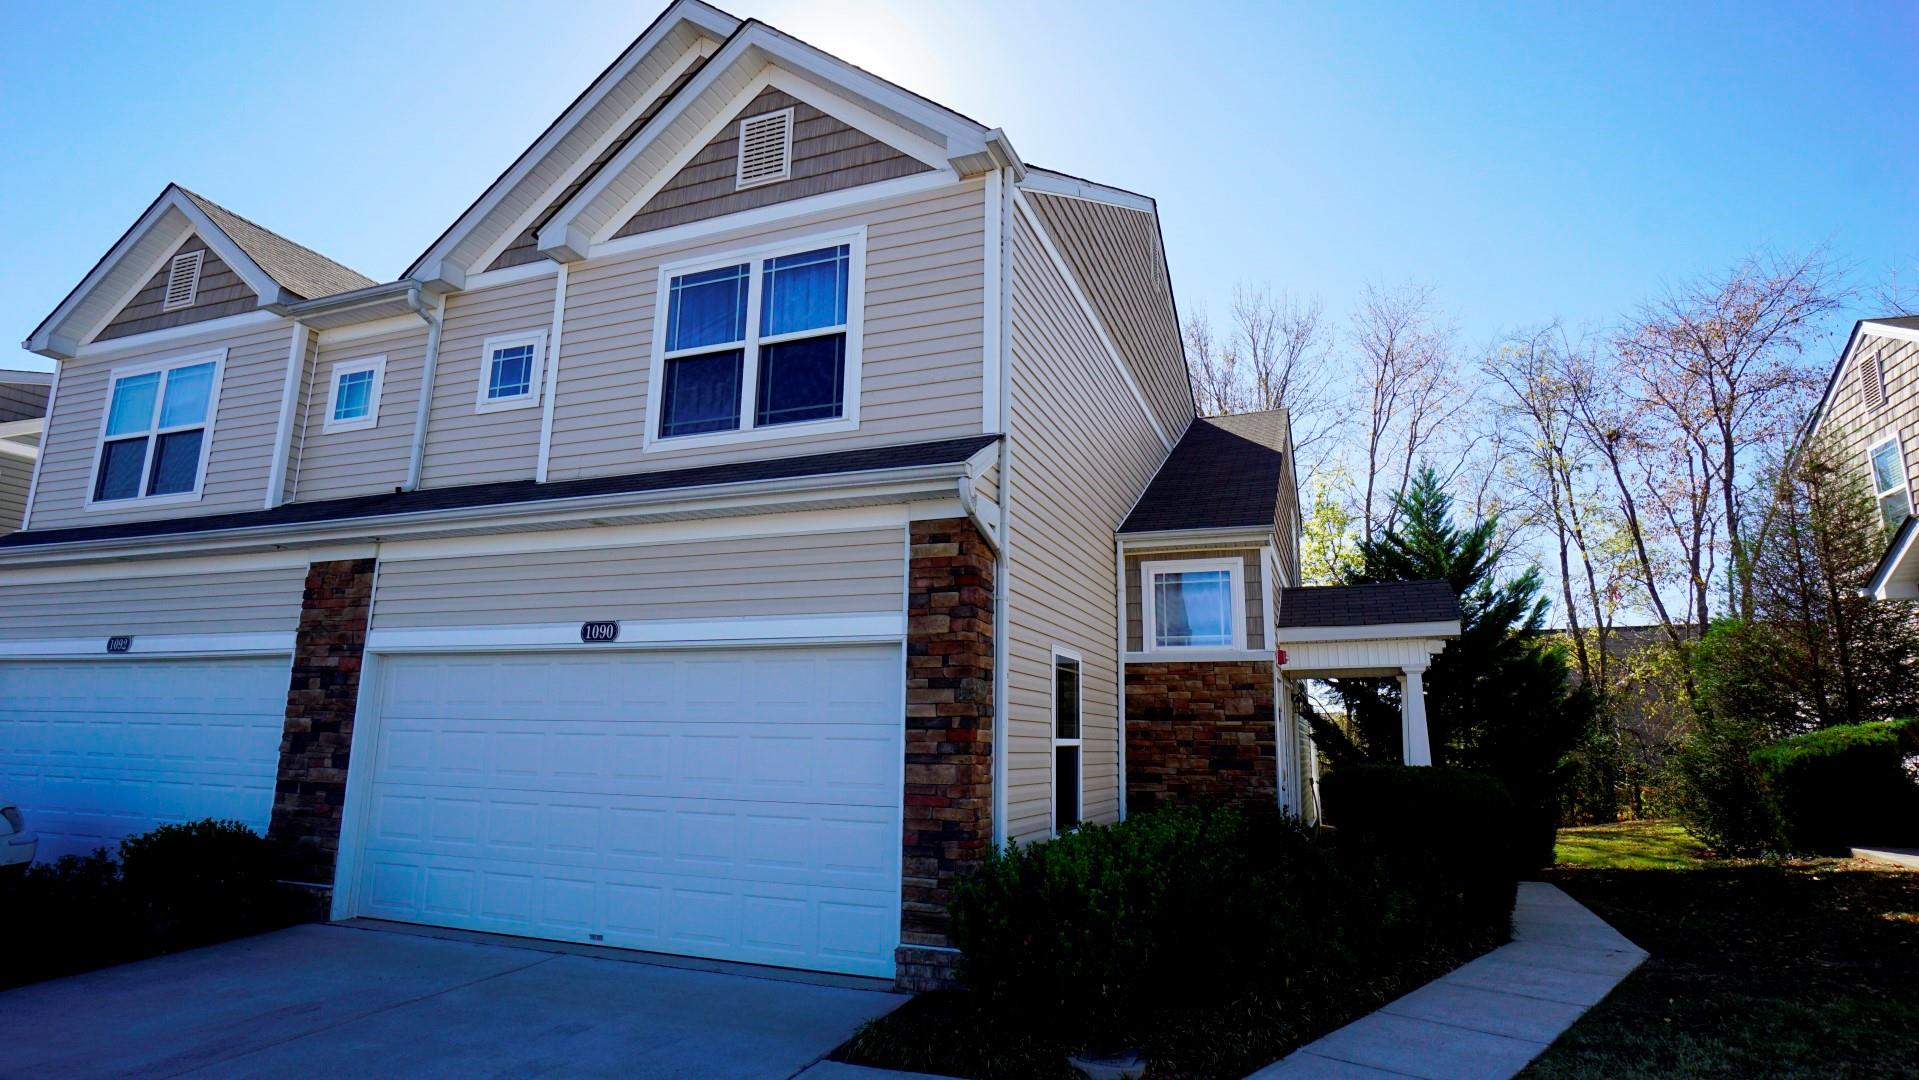 Photo of 1090 Somerset Springs Dr  Spring Hill  TN